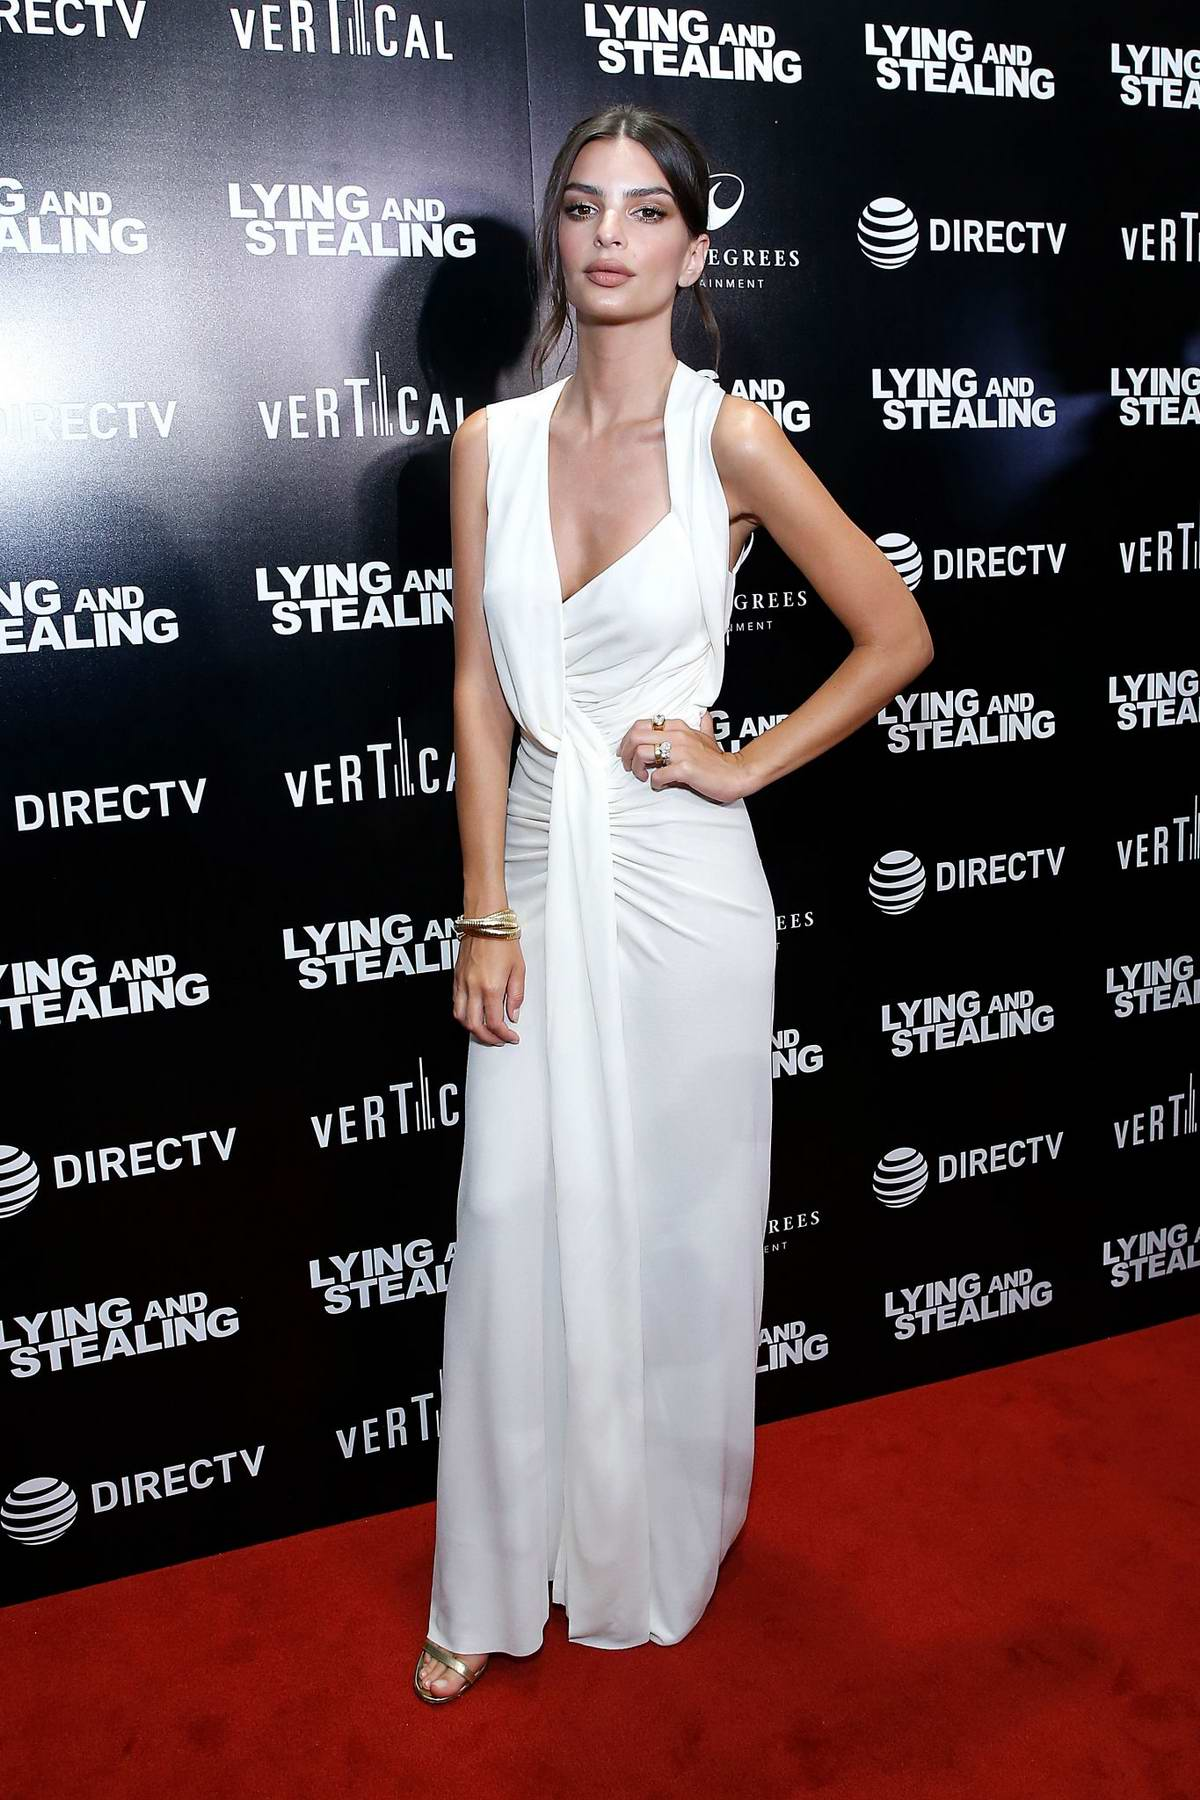 Emily Ratajkowski attends the 'Lying And Stealing' New York Screening at Cinepolis Chelsea in New York City